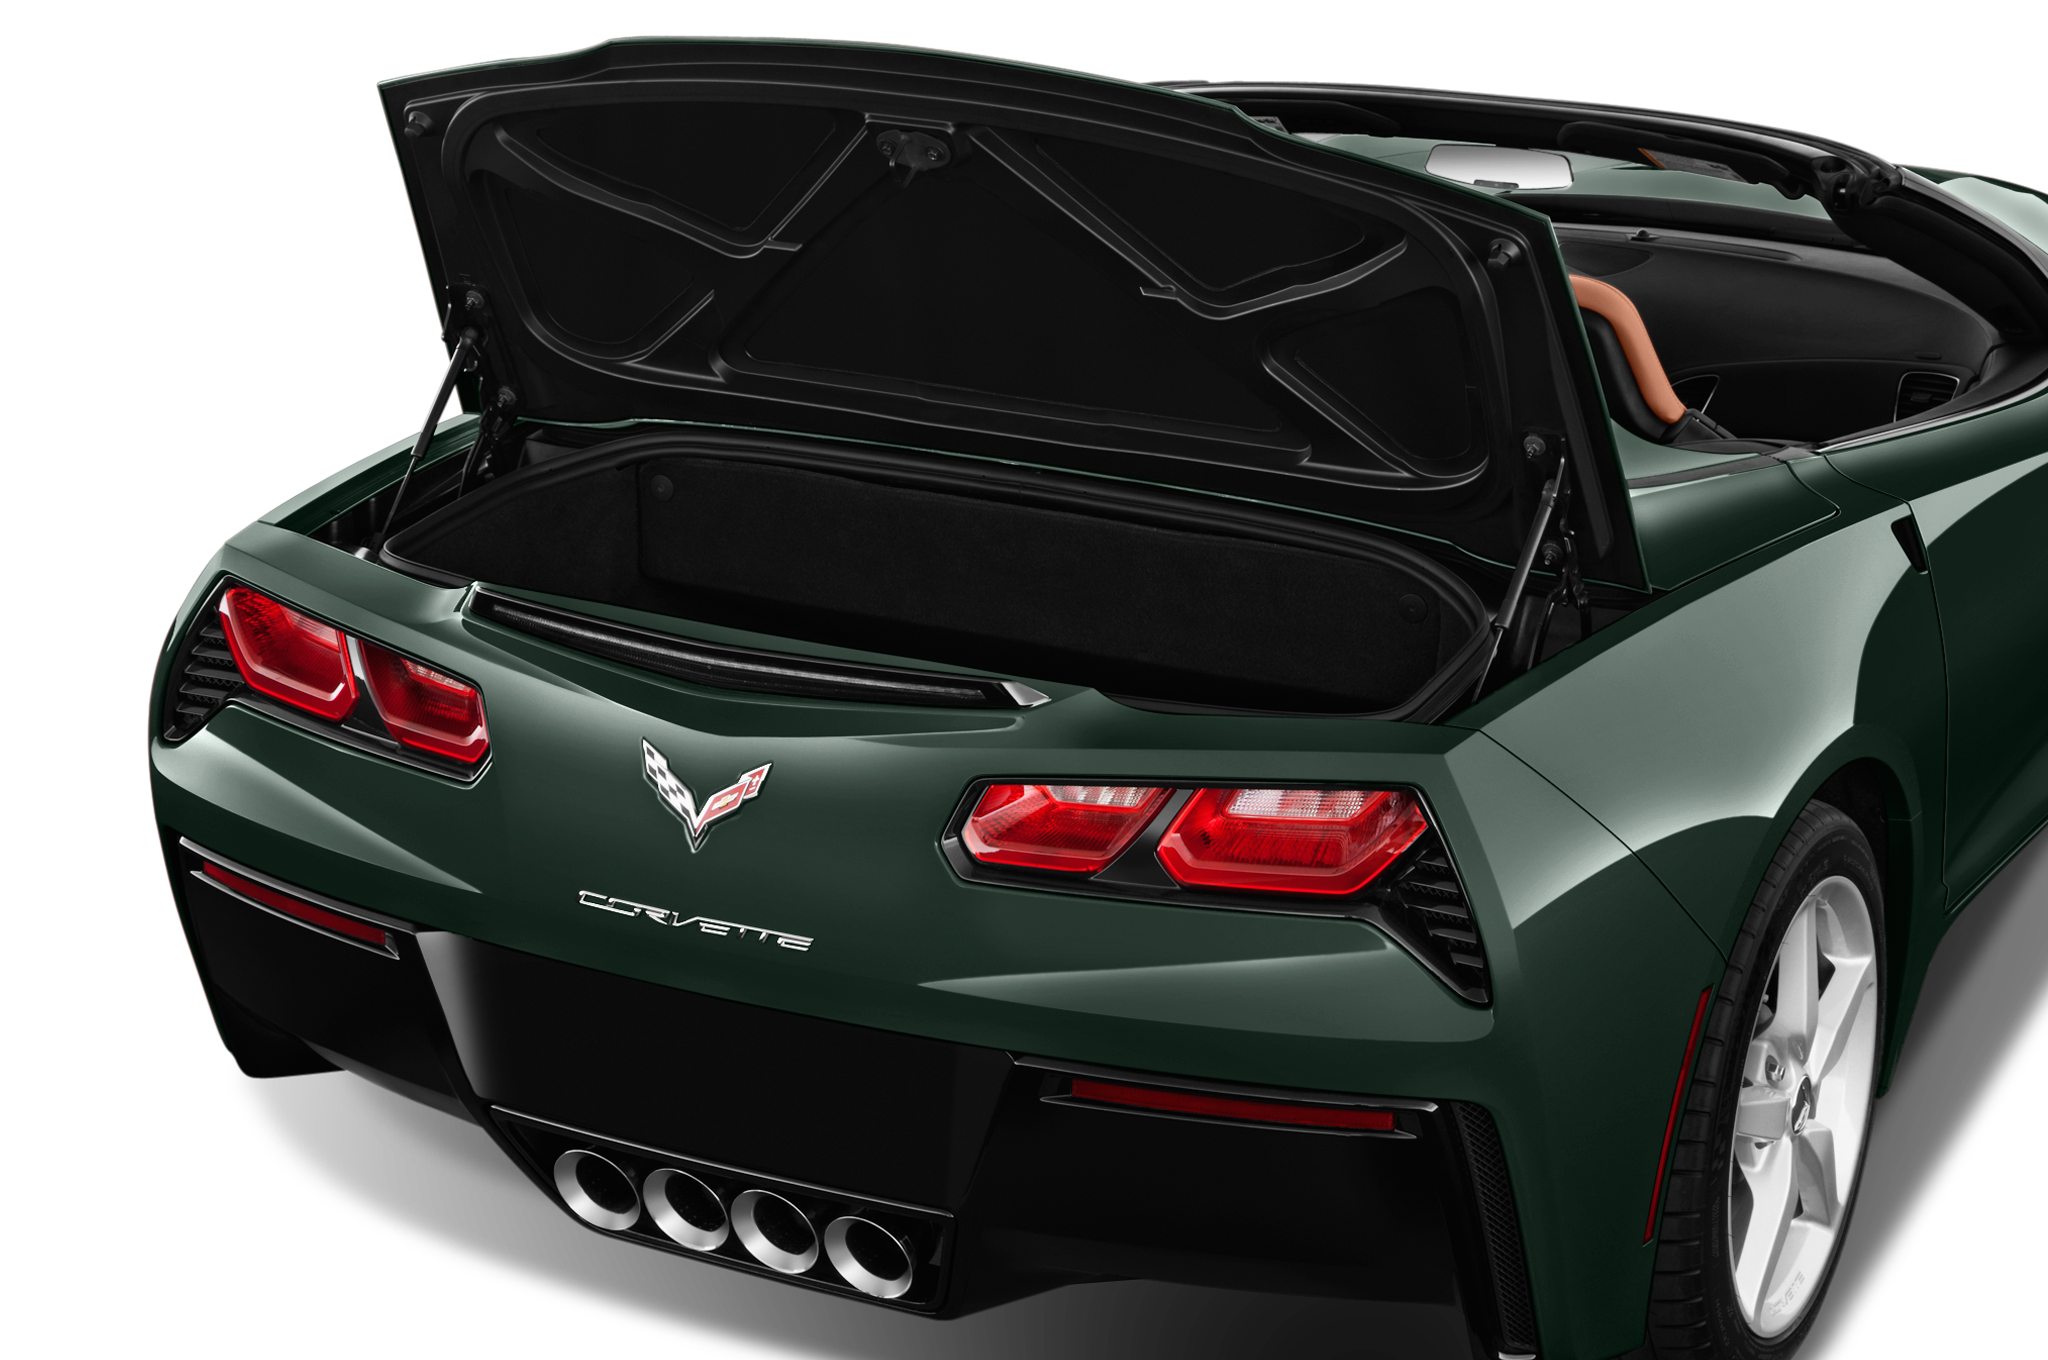 2017 Chevrolet Corvette Grand Sport Coupe Starts From 66445 1940 Ford Dash Light Wiring Diagram 50 200